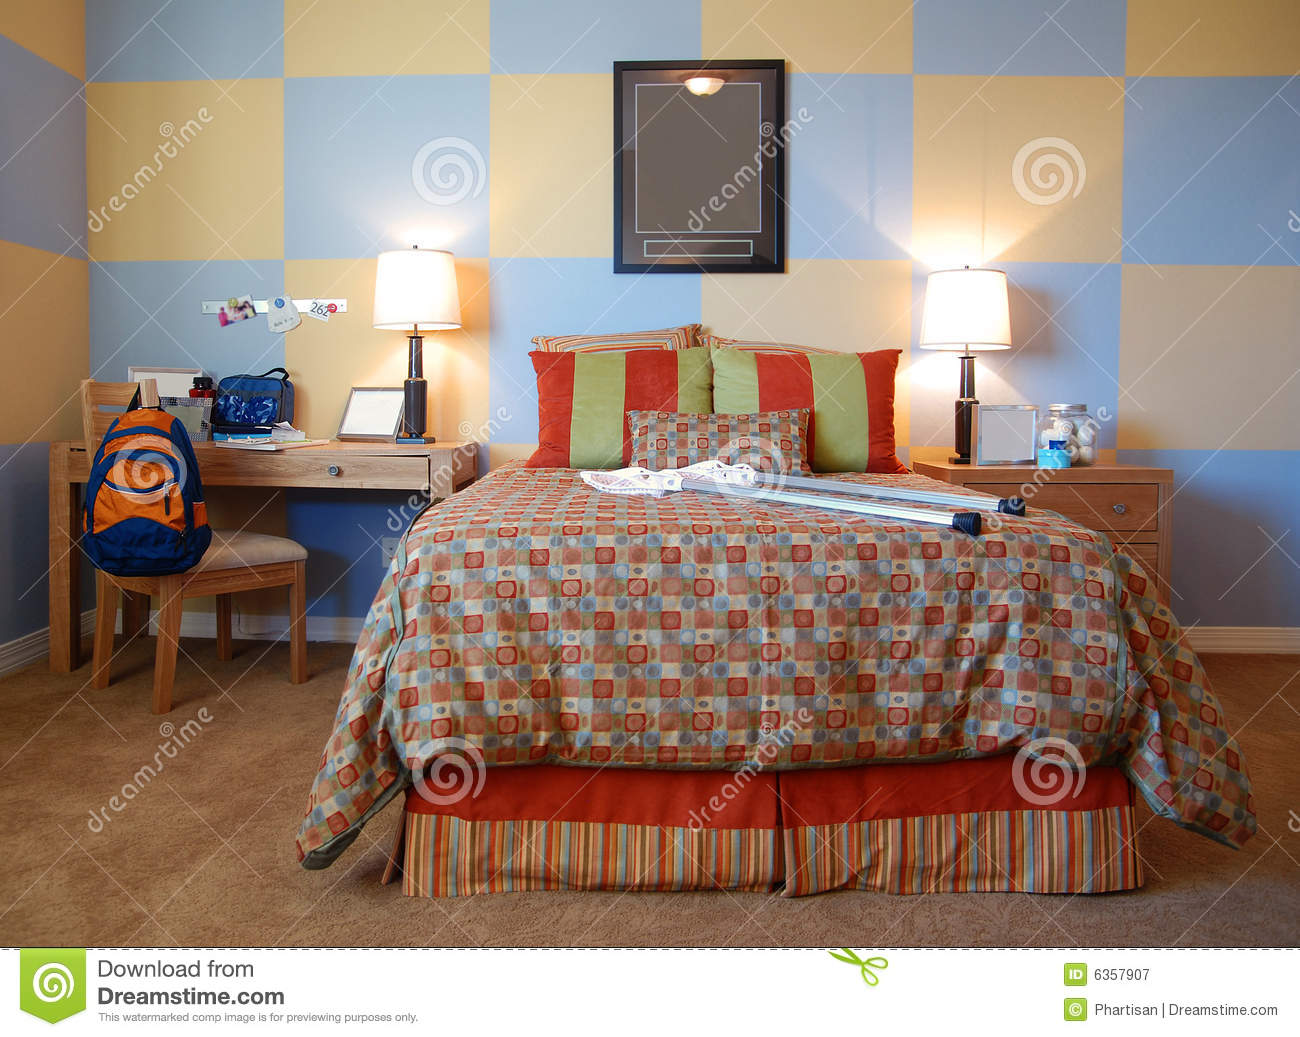 Fun Funky Childrens Bedroom Stock Image - Image of modern ...